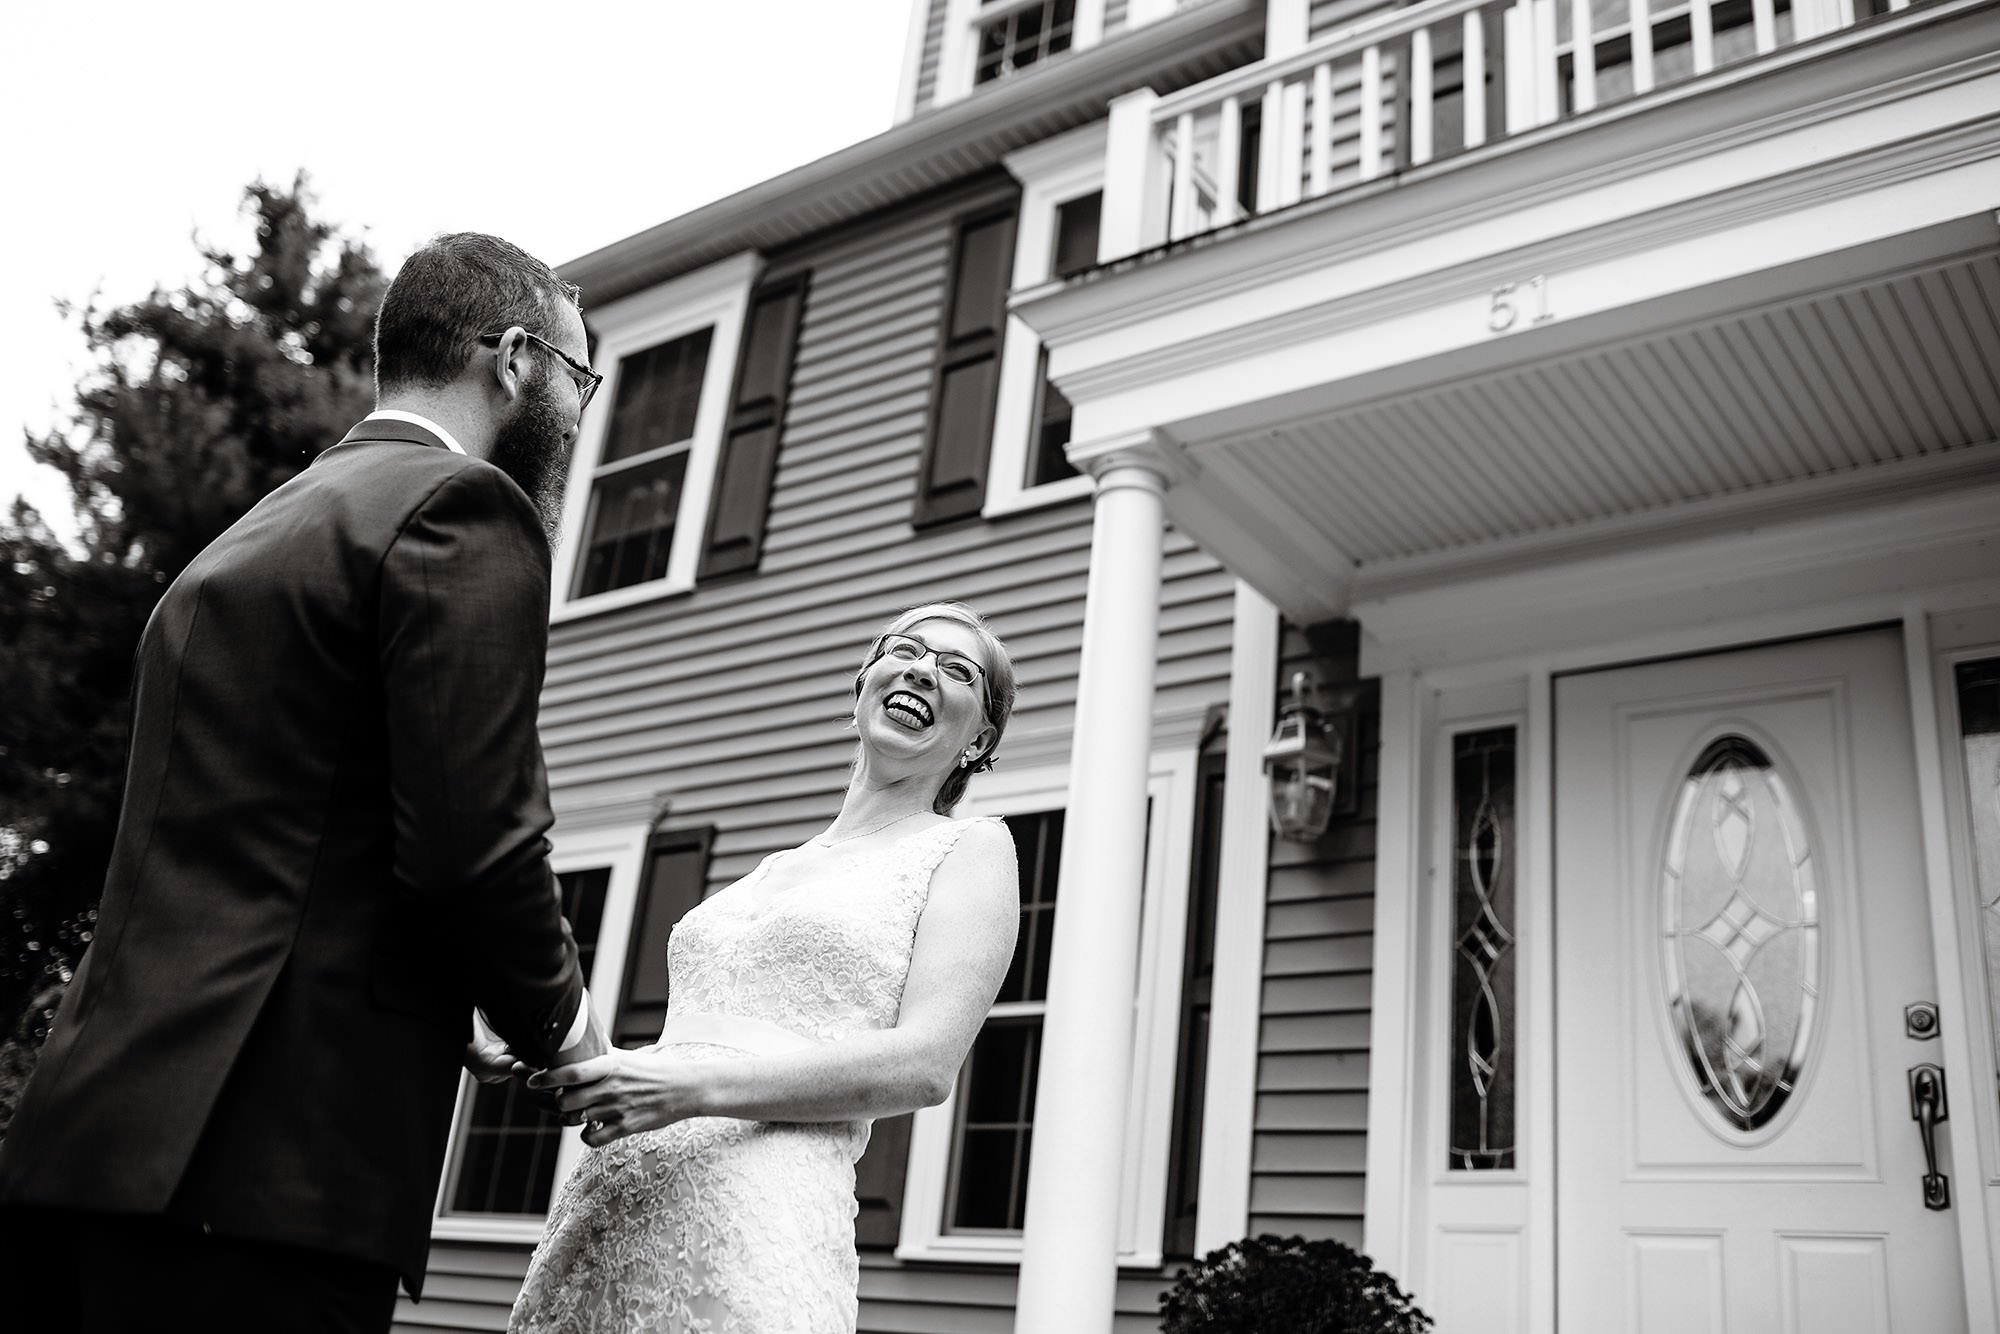 Massachusetts Backyard Wedding  I  The bride and groom share their first look before the ceremony.